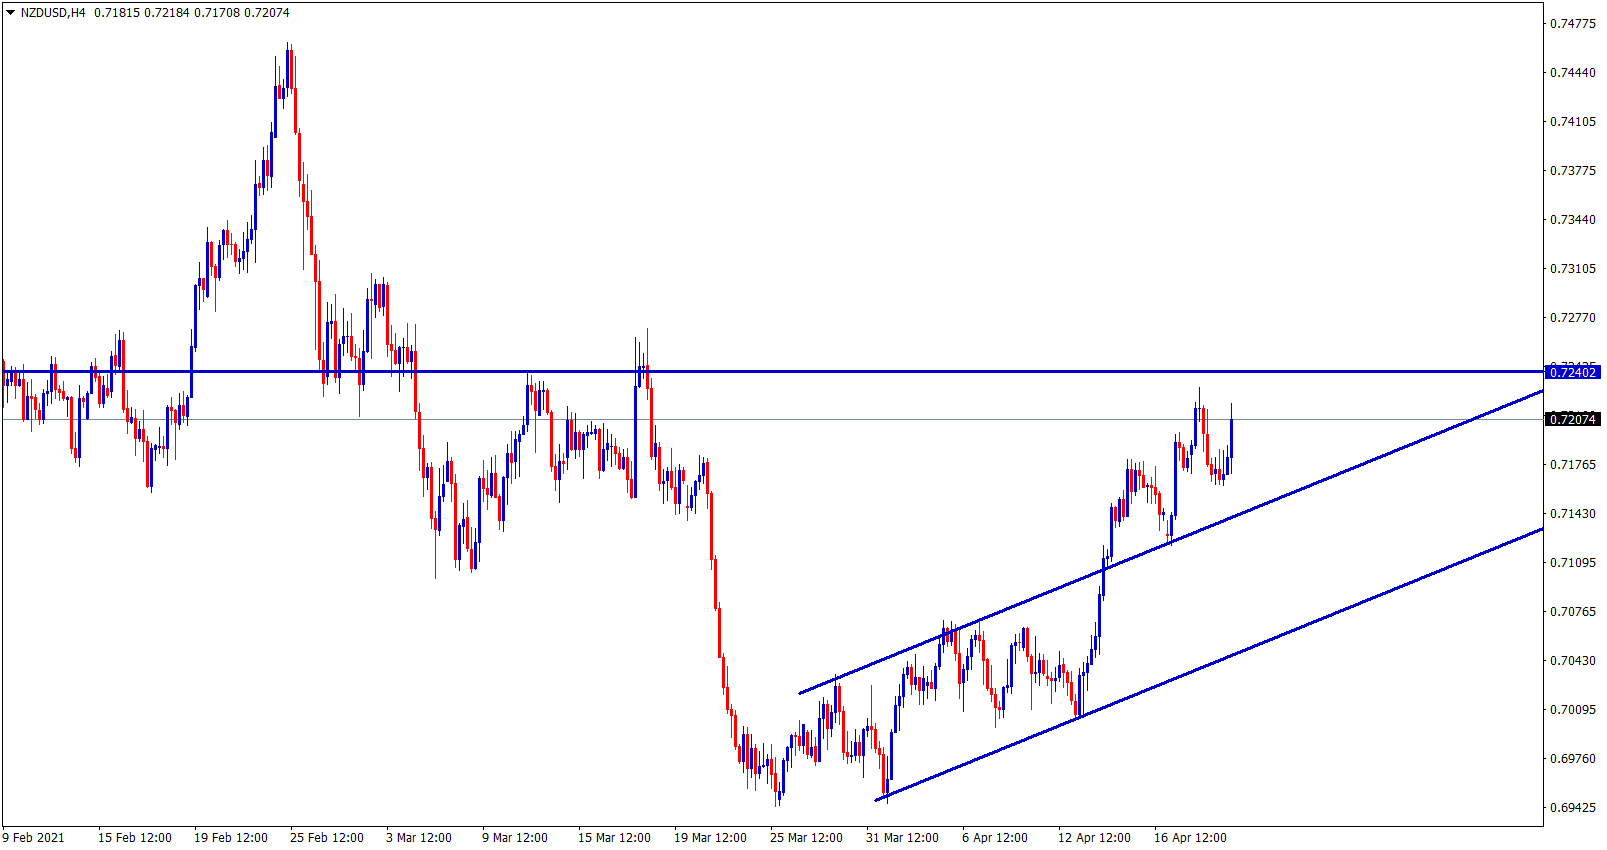 NZDUSD broken the small channel and oging to reach the resistance